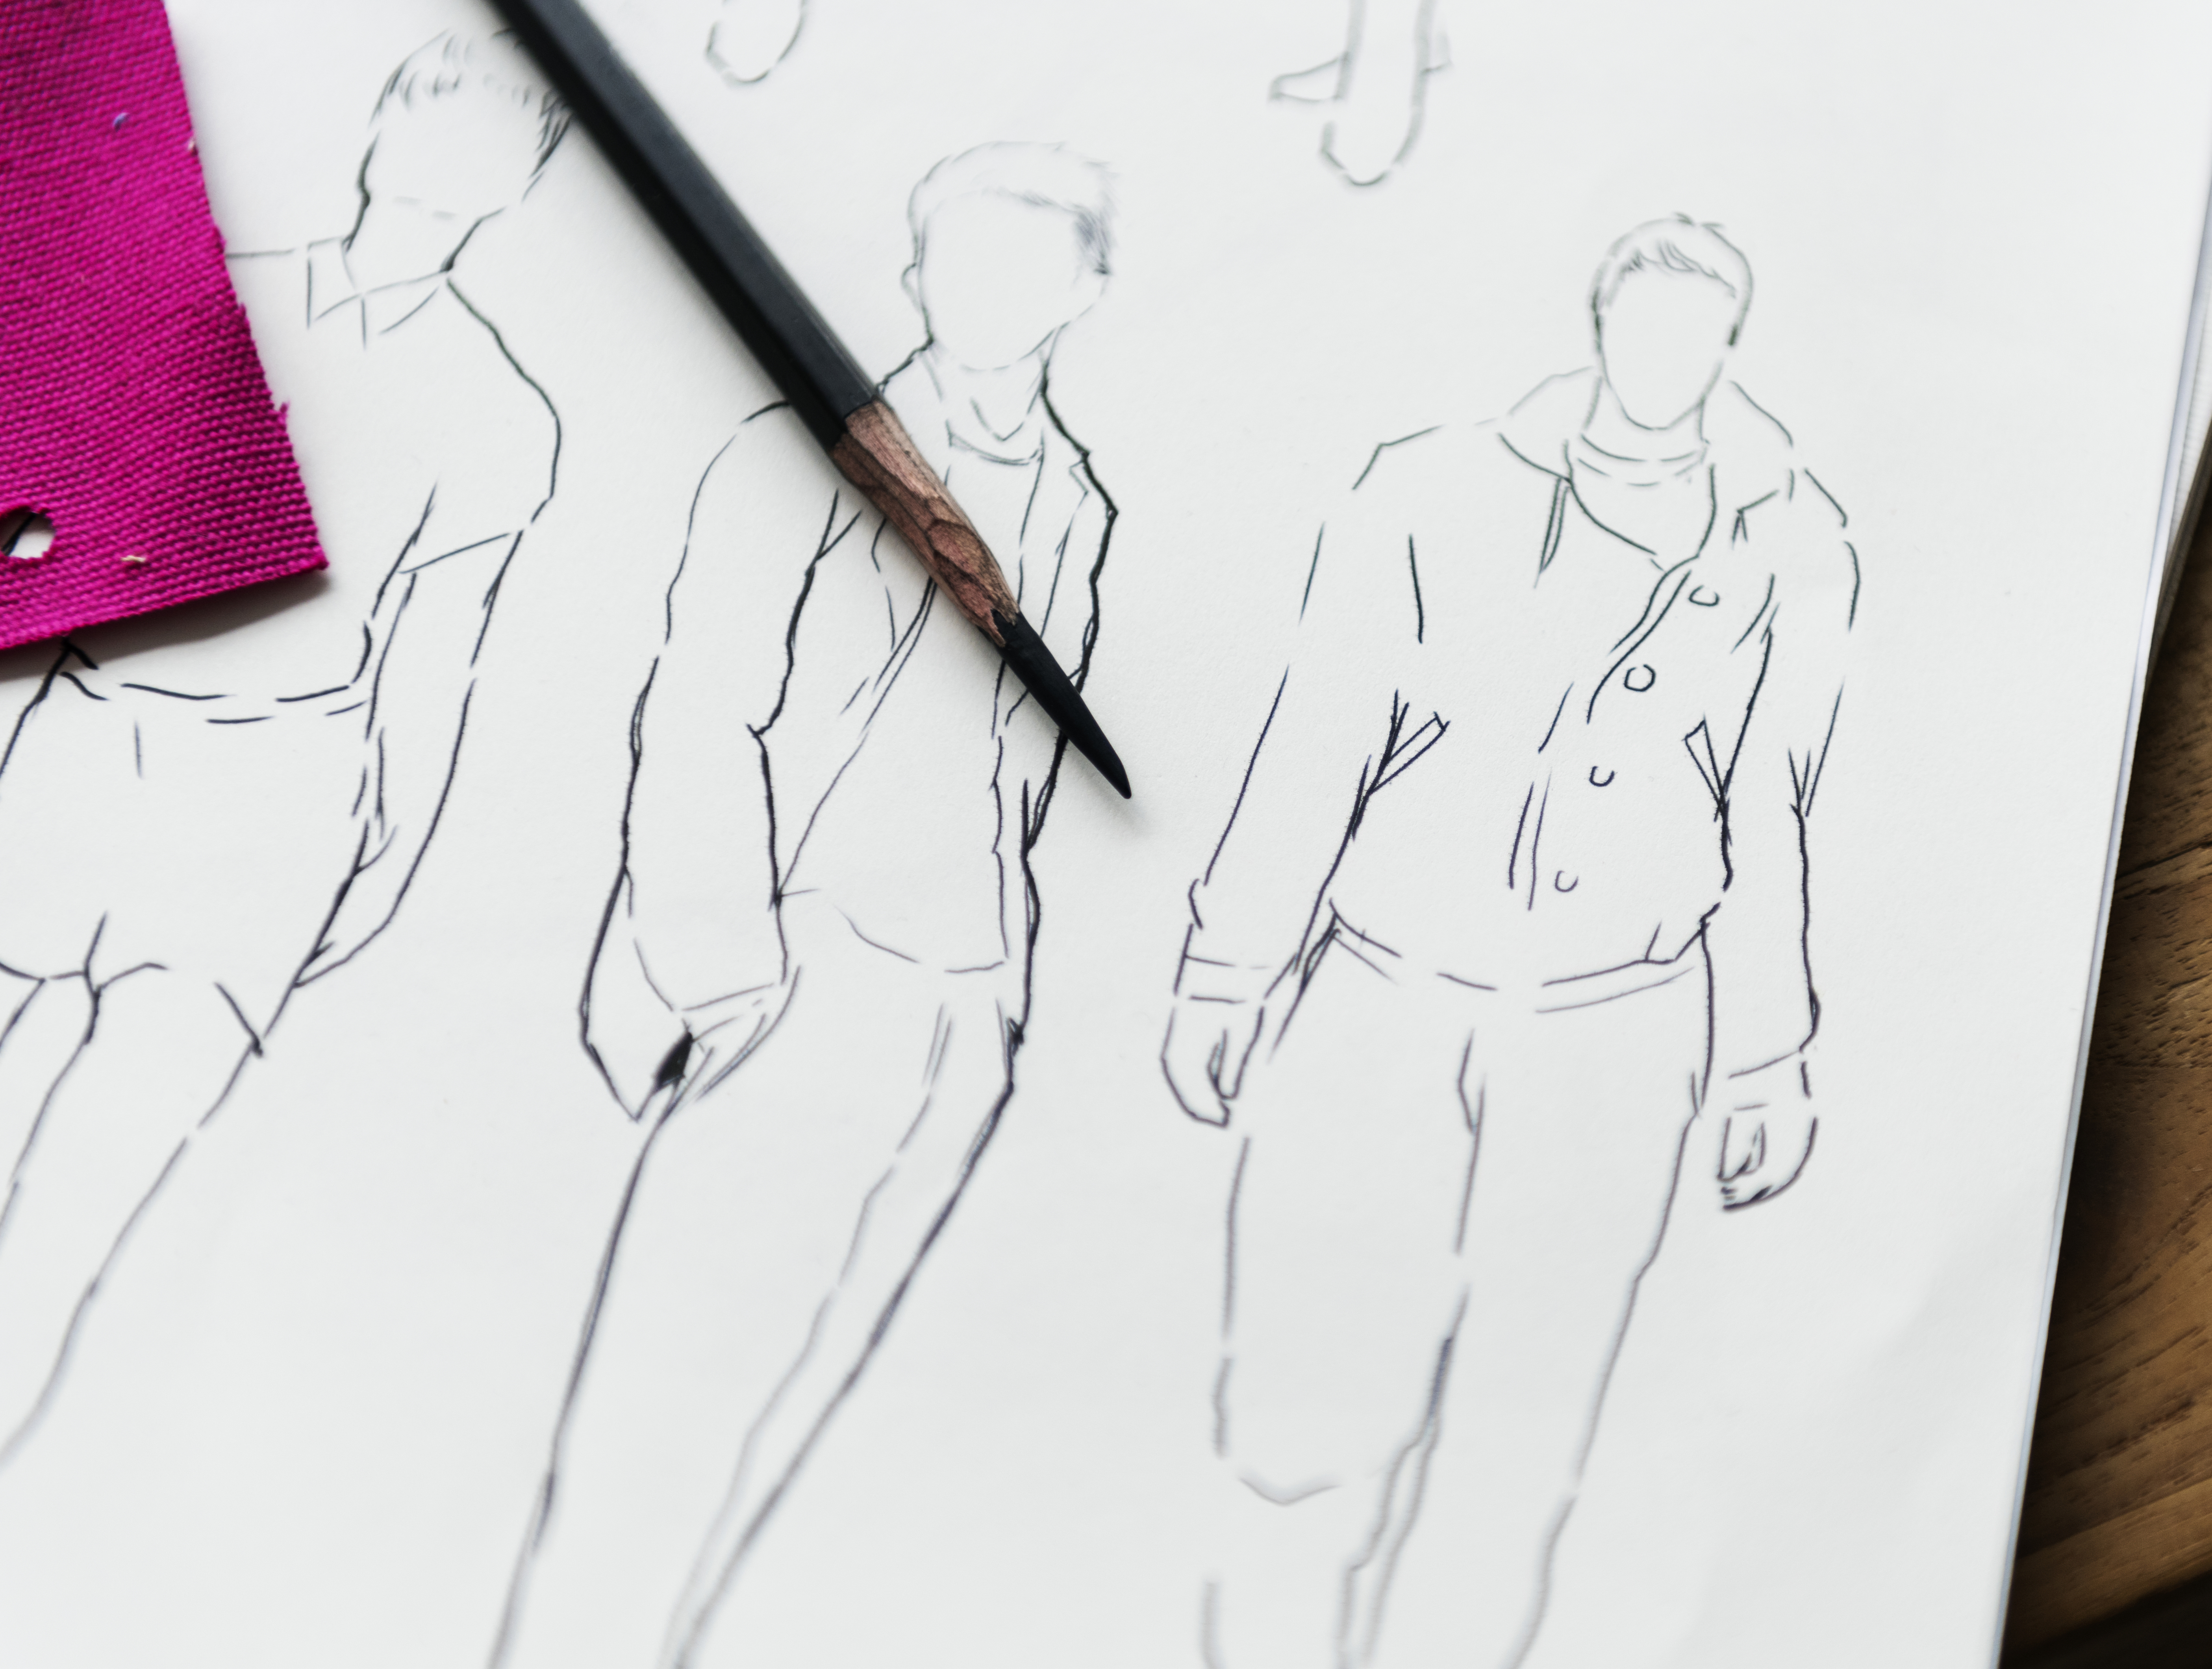 Sketches from a clothing design tech pack